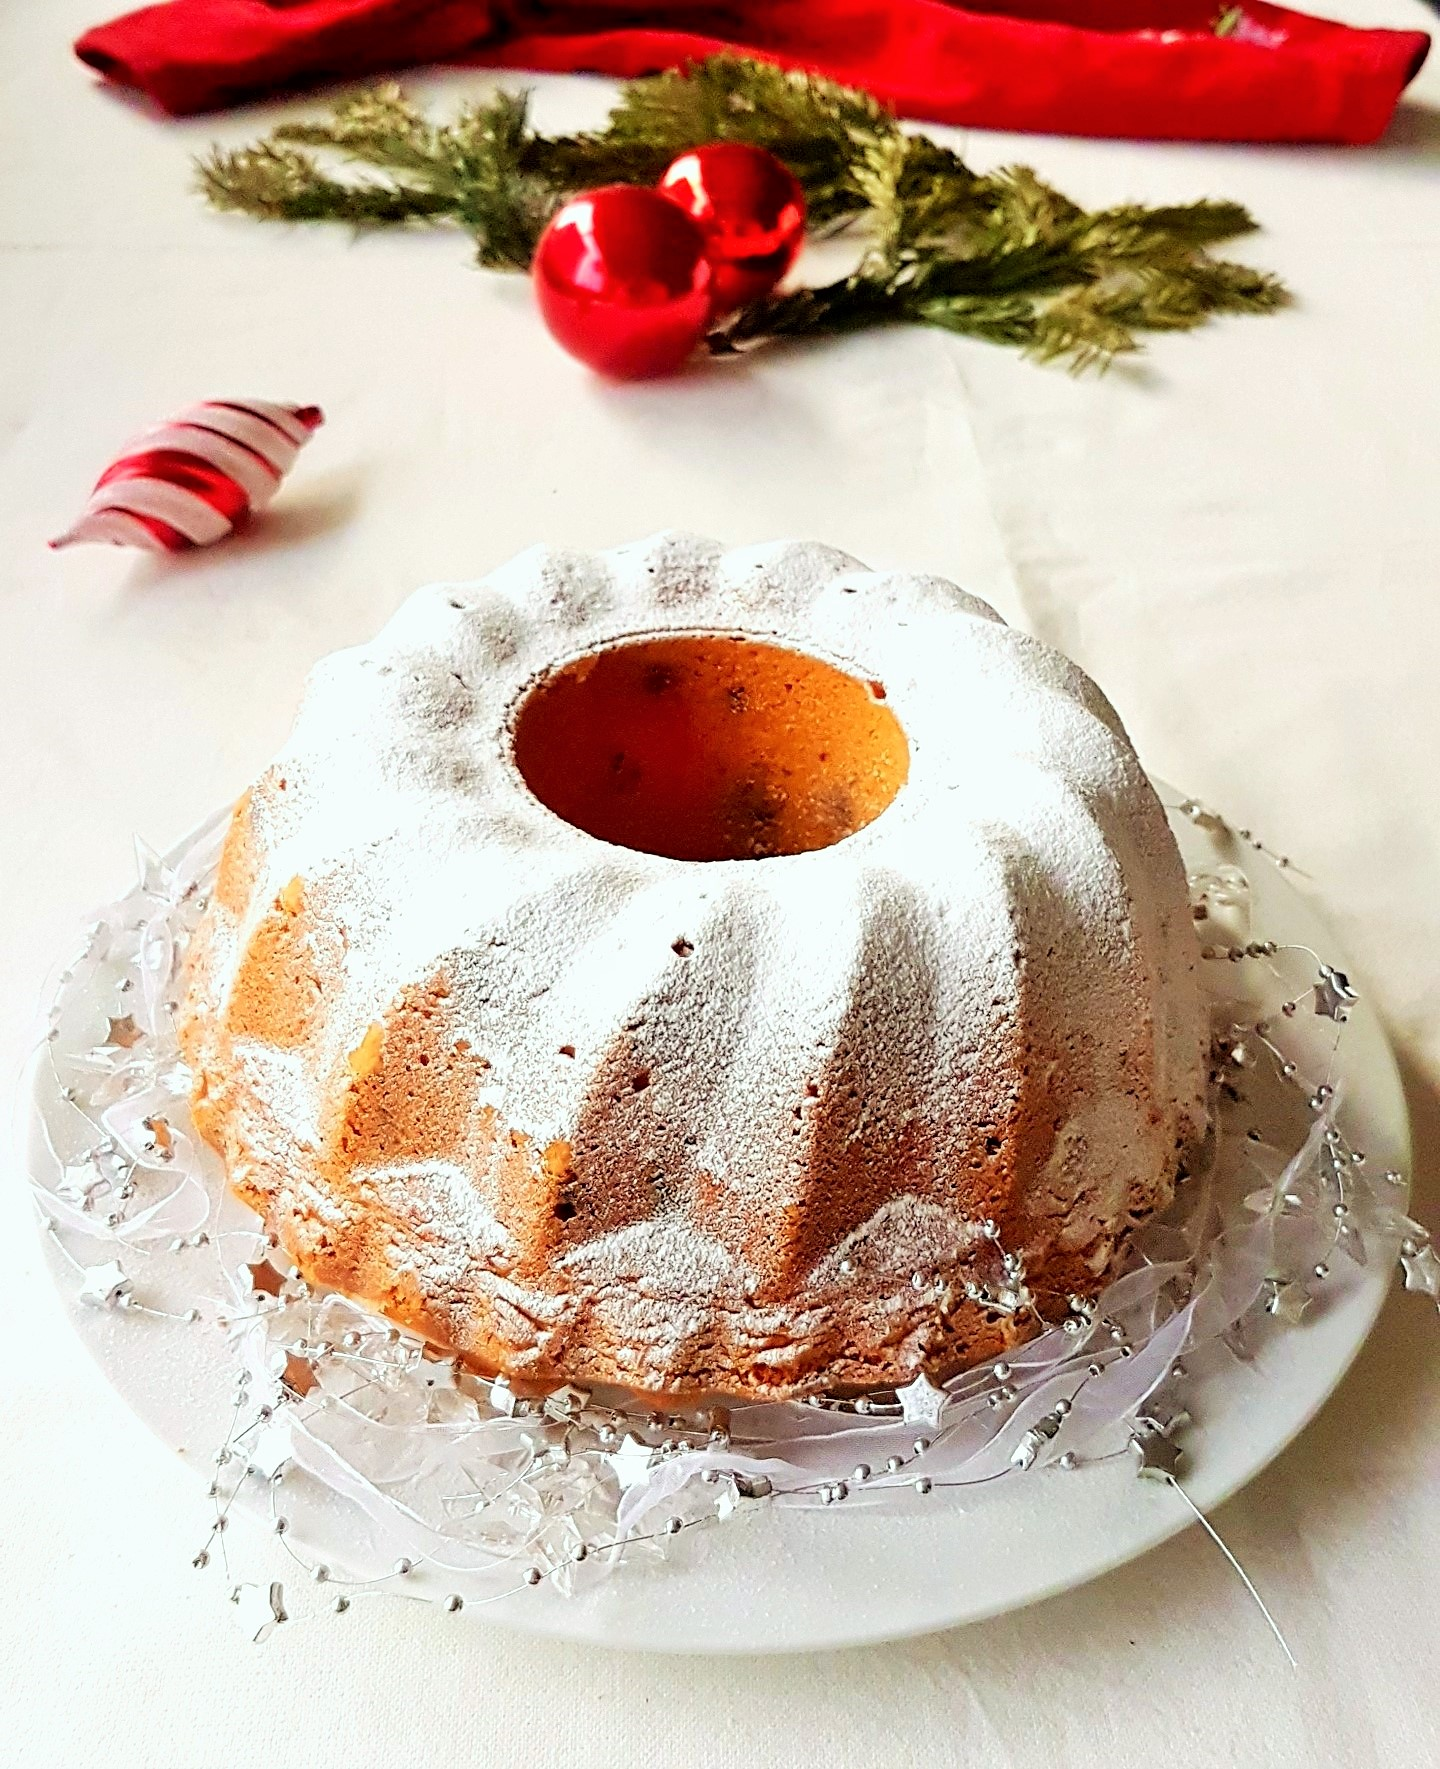 cherry-chocolate-chip-bundt-cake-8